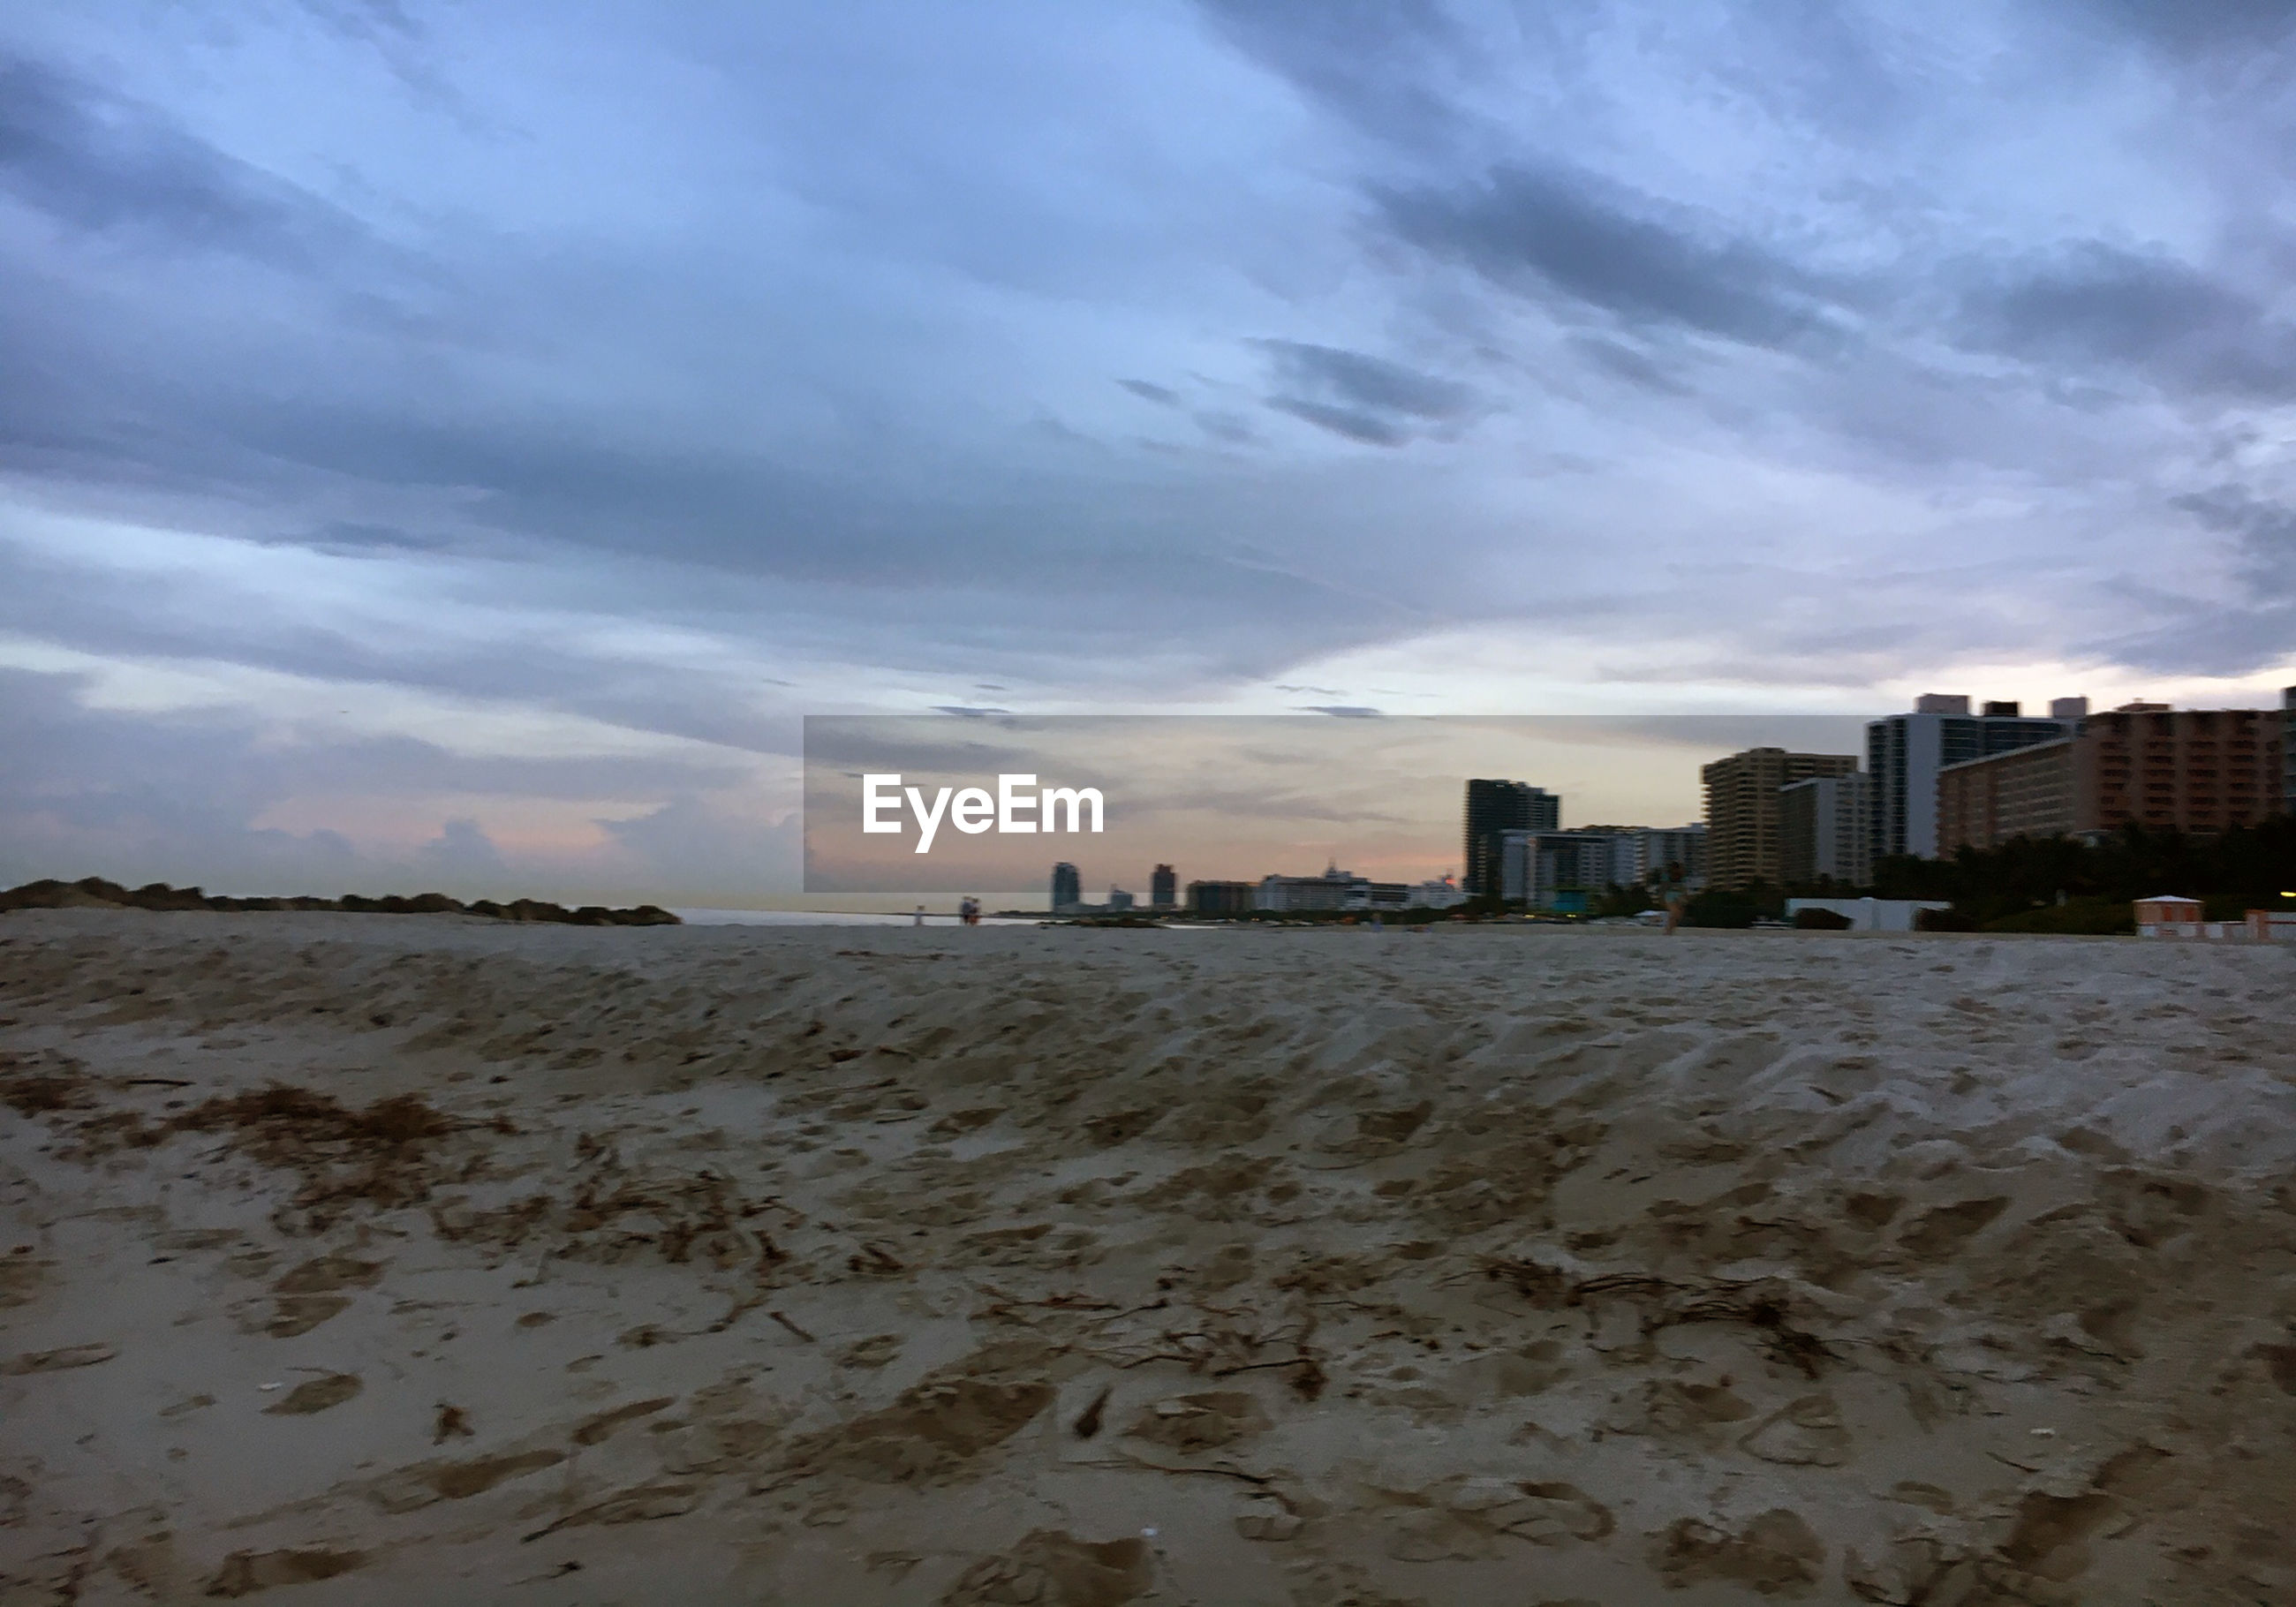 VIEW OF BEACH AND BUILDINGS AGAINST SKY